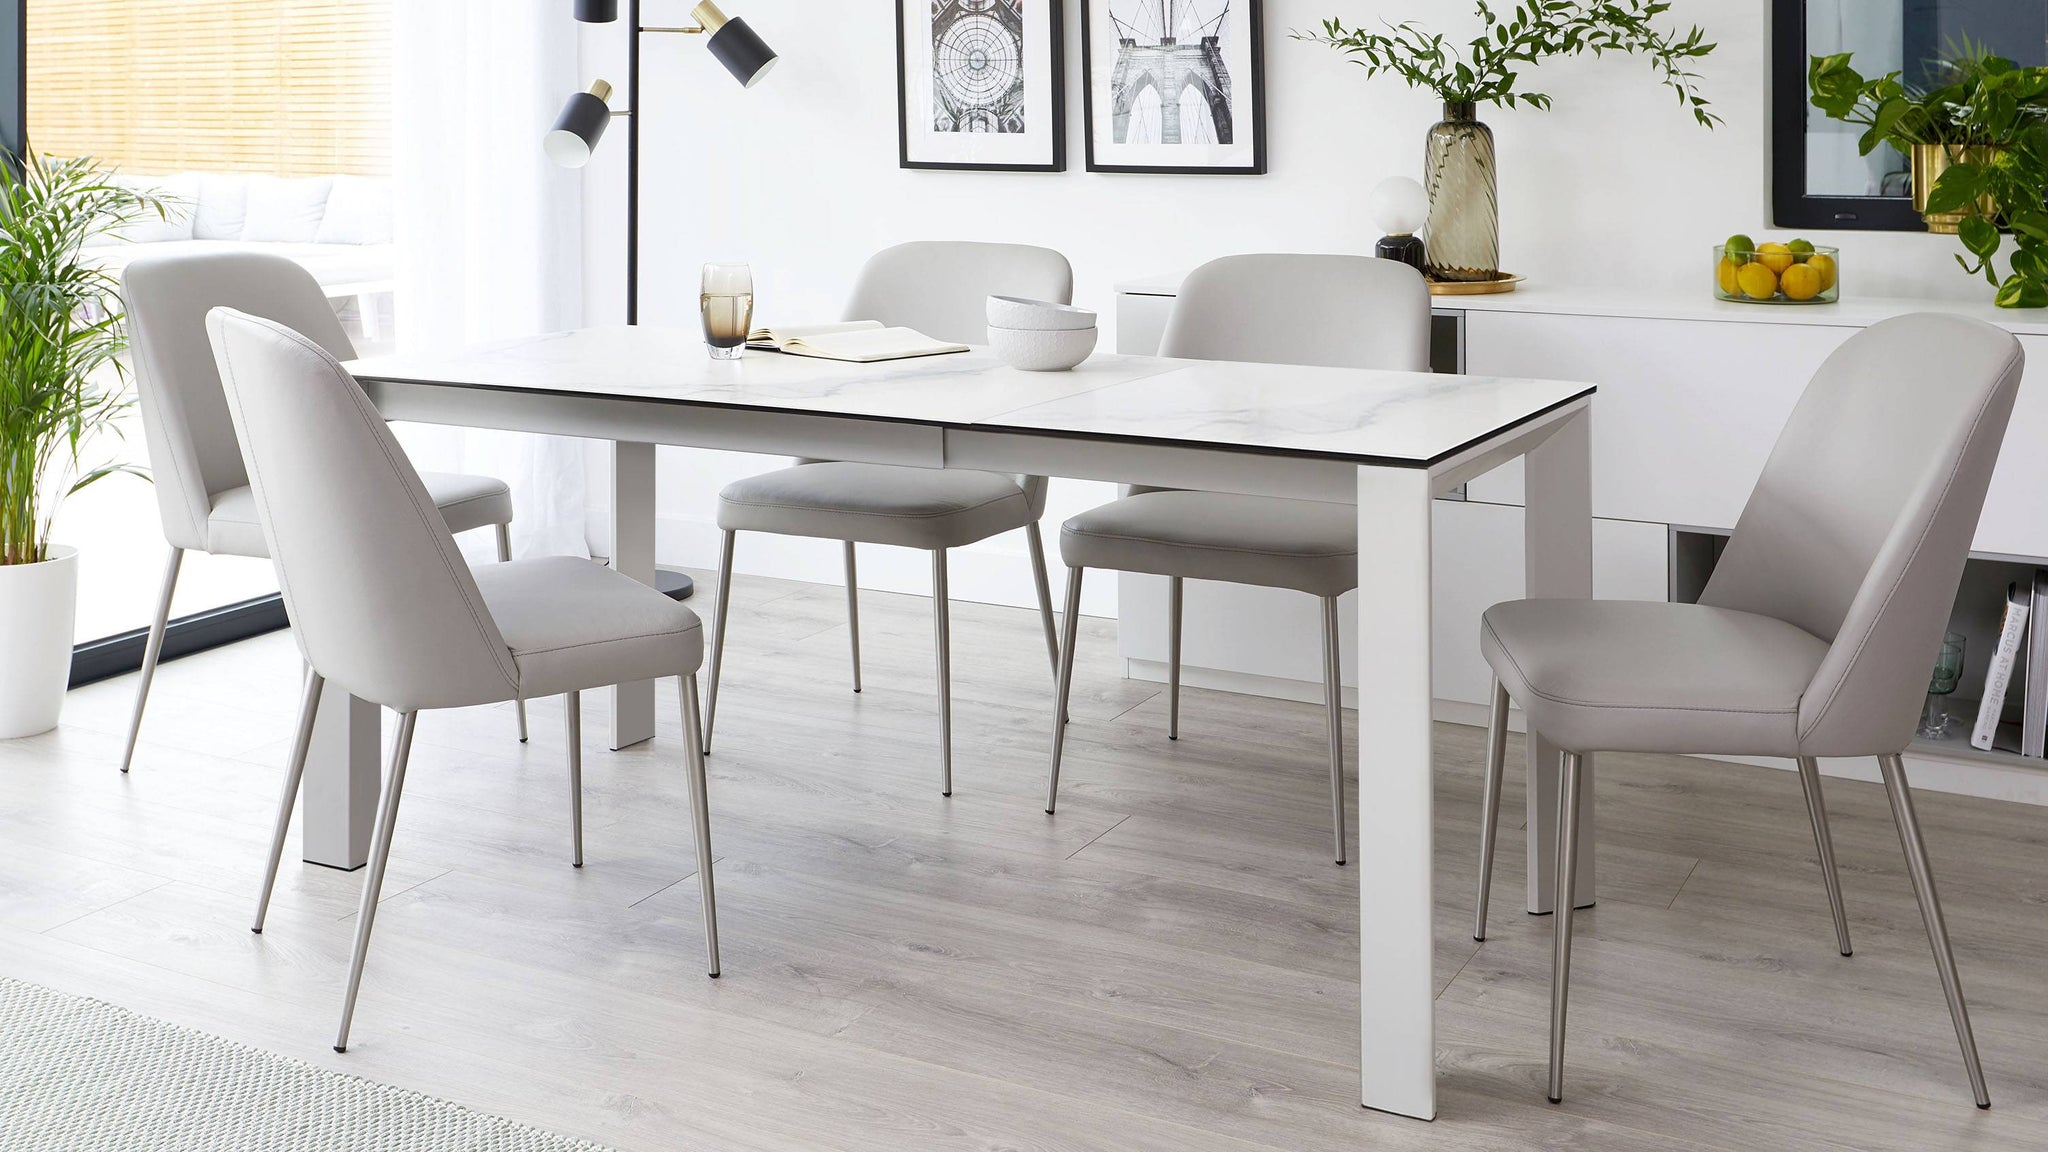 White marble ceramic extending dining table